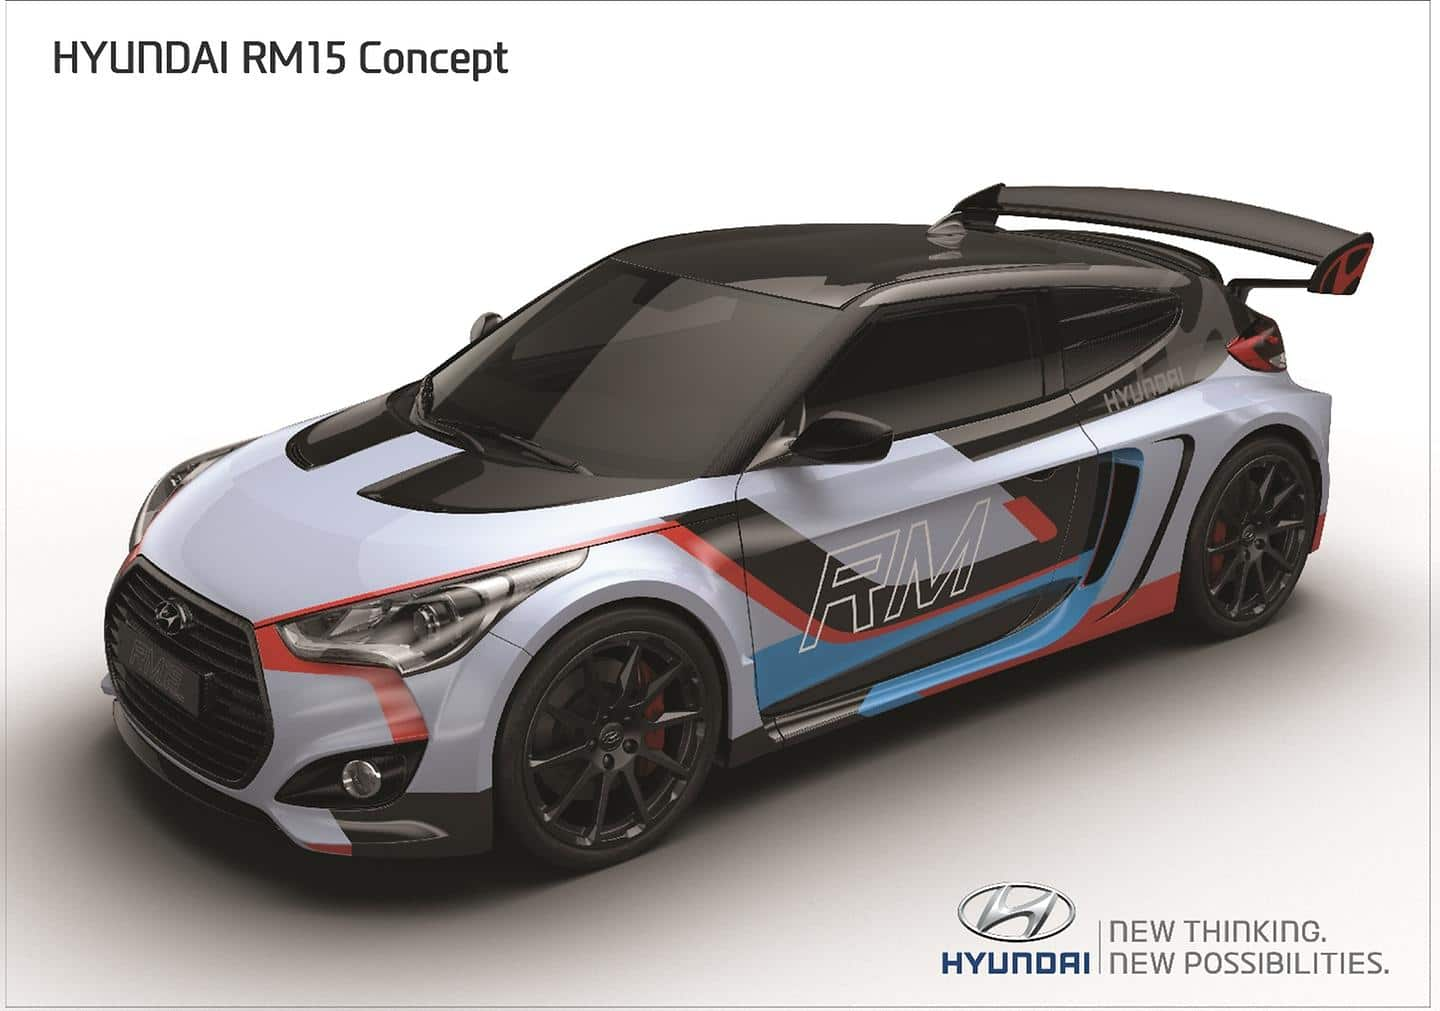 Engineered Without Compromise: Hyundai Motor's Mid-engined Coupe Concept 'RM15' Revealed at 2015 Seoul Motor Show